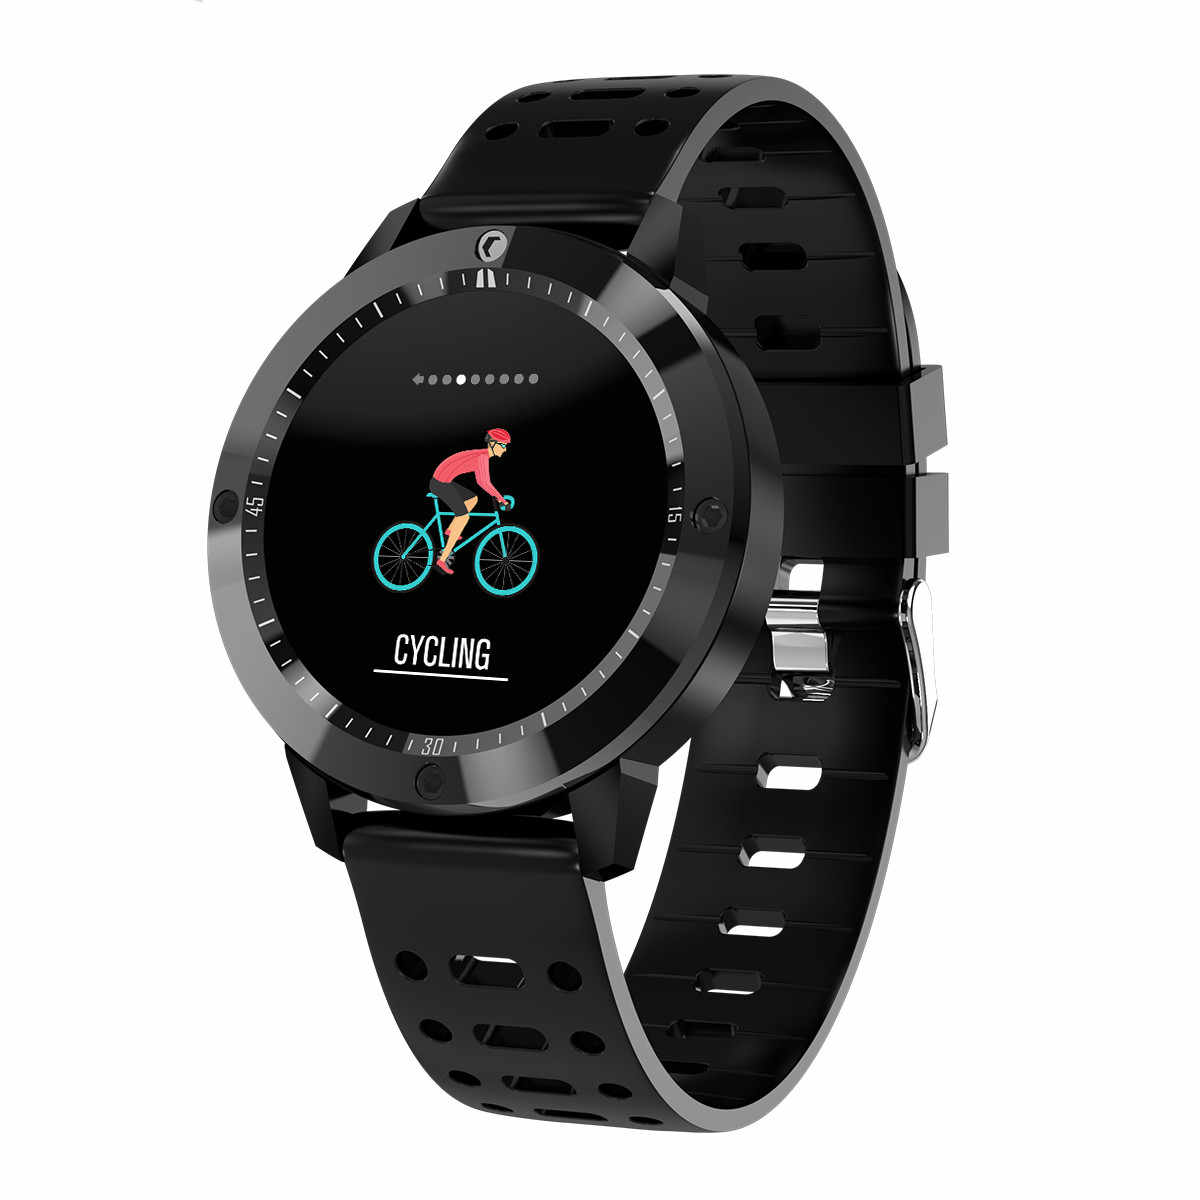 CF58 Smart watch IP67 waterproof Tempered glass Activity Fitness tracker Heart rate monitor Sports Men women smartwatch